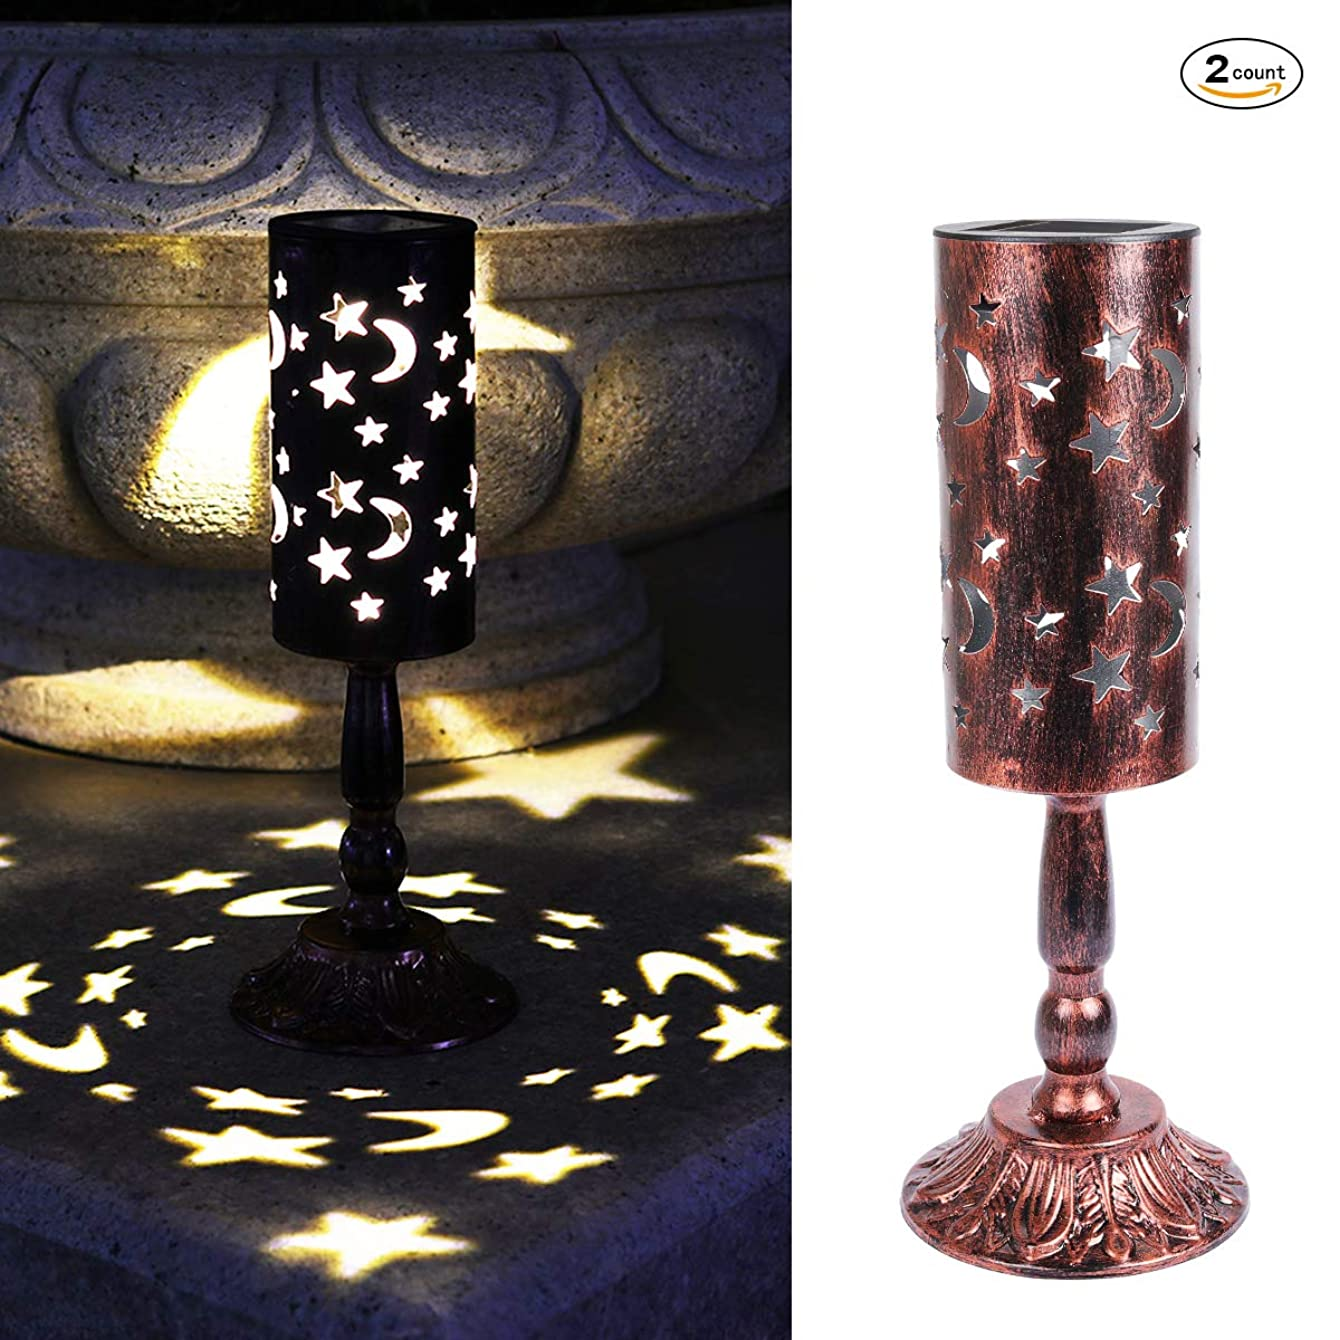 2 Pcs,Solar Candlestick Lights Retro Solar Table lamp for Indoor Outdoor Home Antique Table lamp,Solar Powered Lights Garden Yard Art Decor,The Beautiful Moon and Star Pattern